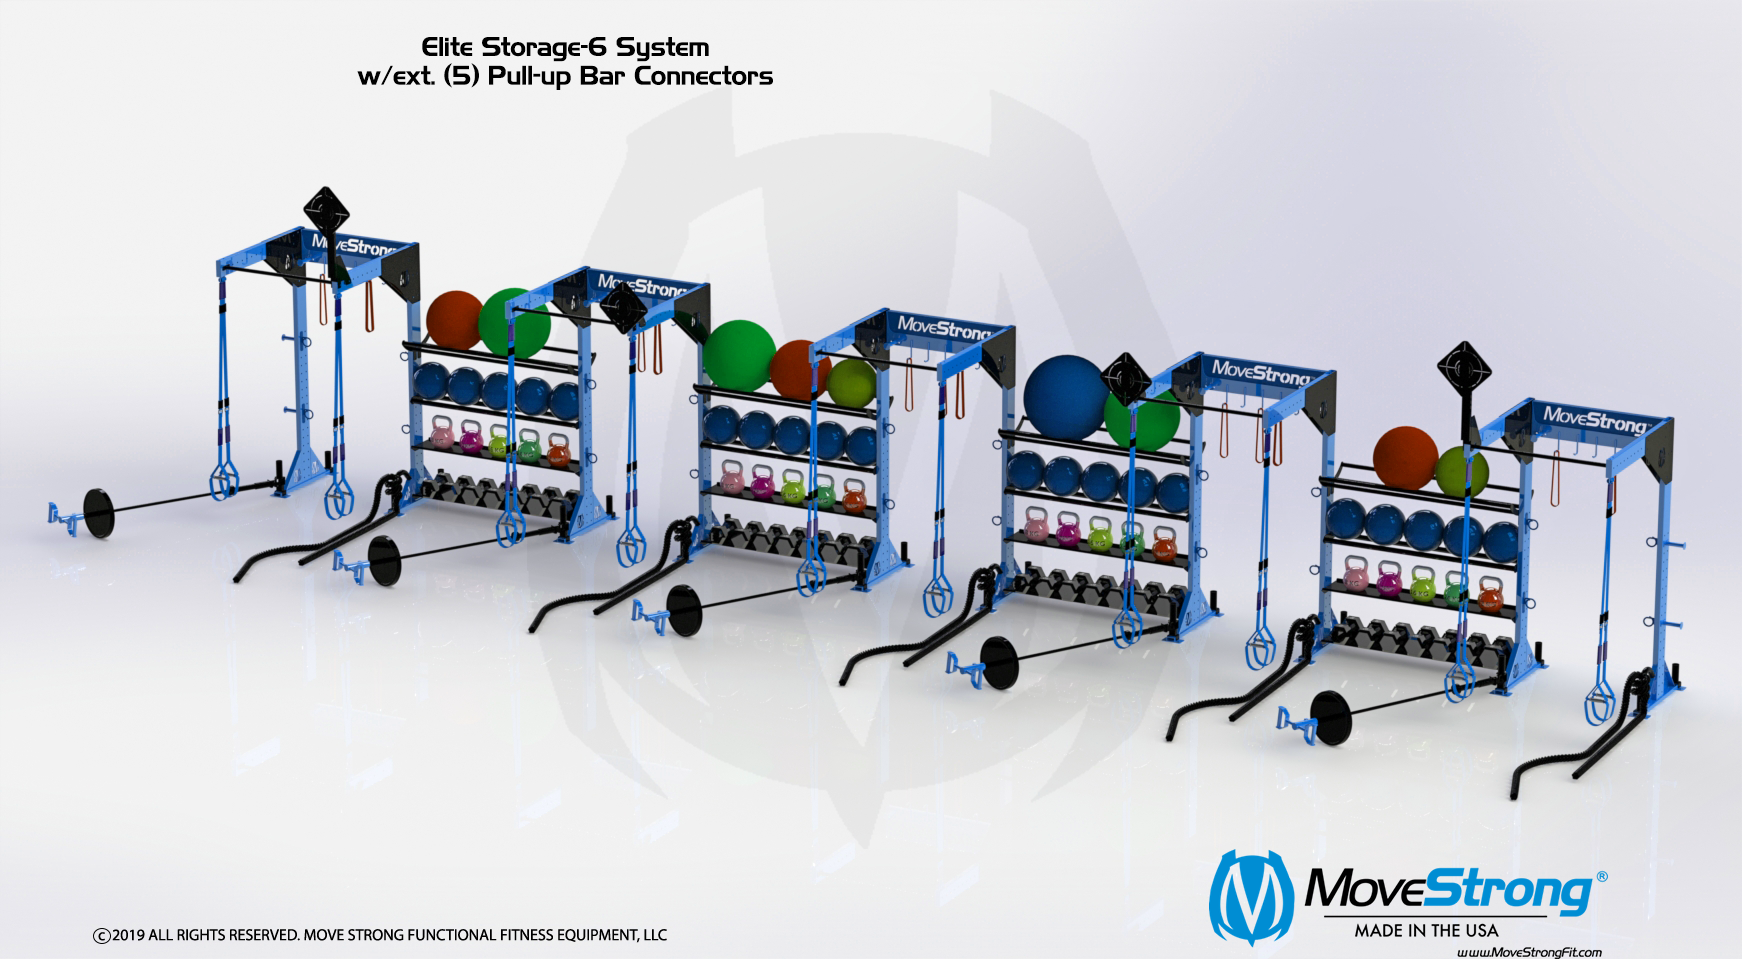 Elite Storage-6 w/ (5) extended Pull-up bars connectors